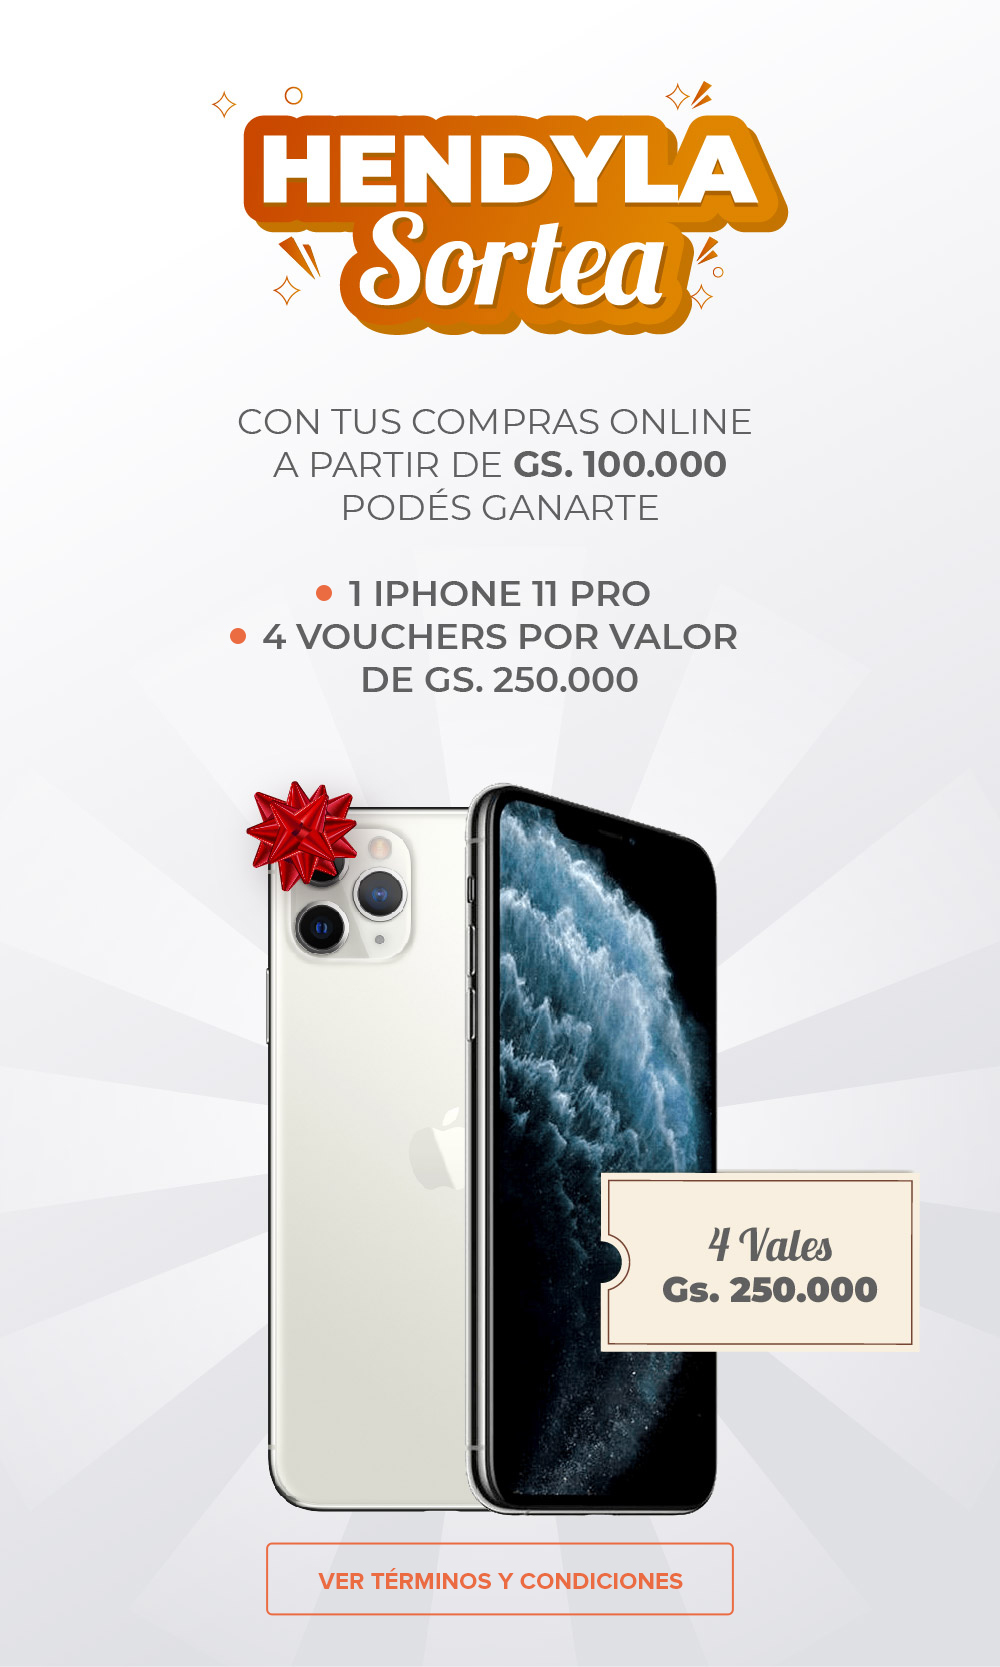 Hendyla Sortea: 1 iphone 11 pro y 4 vouchers por valor de Gs. 250.000